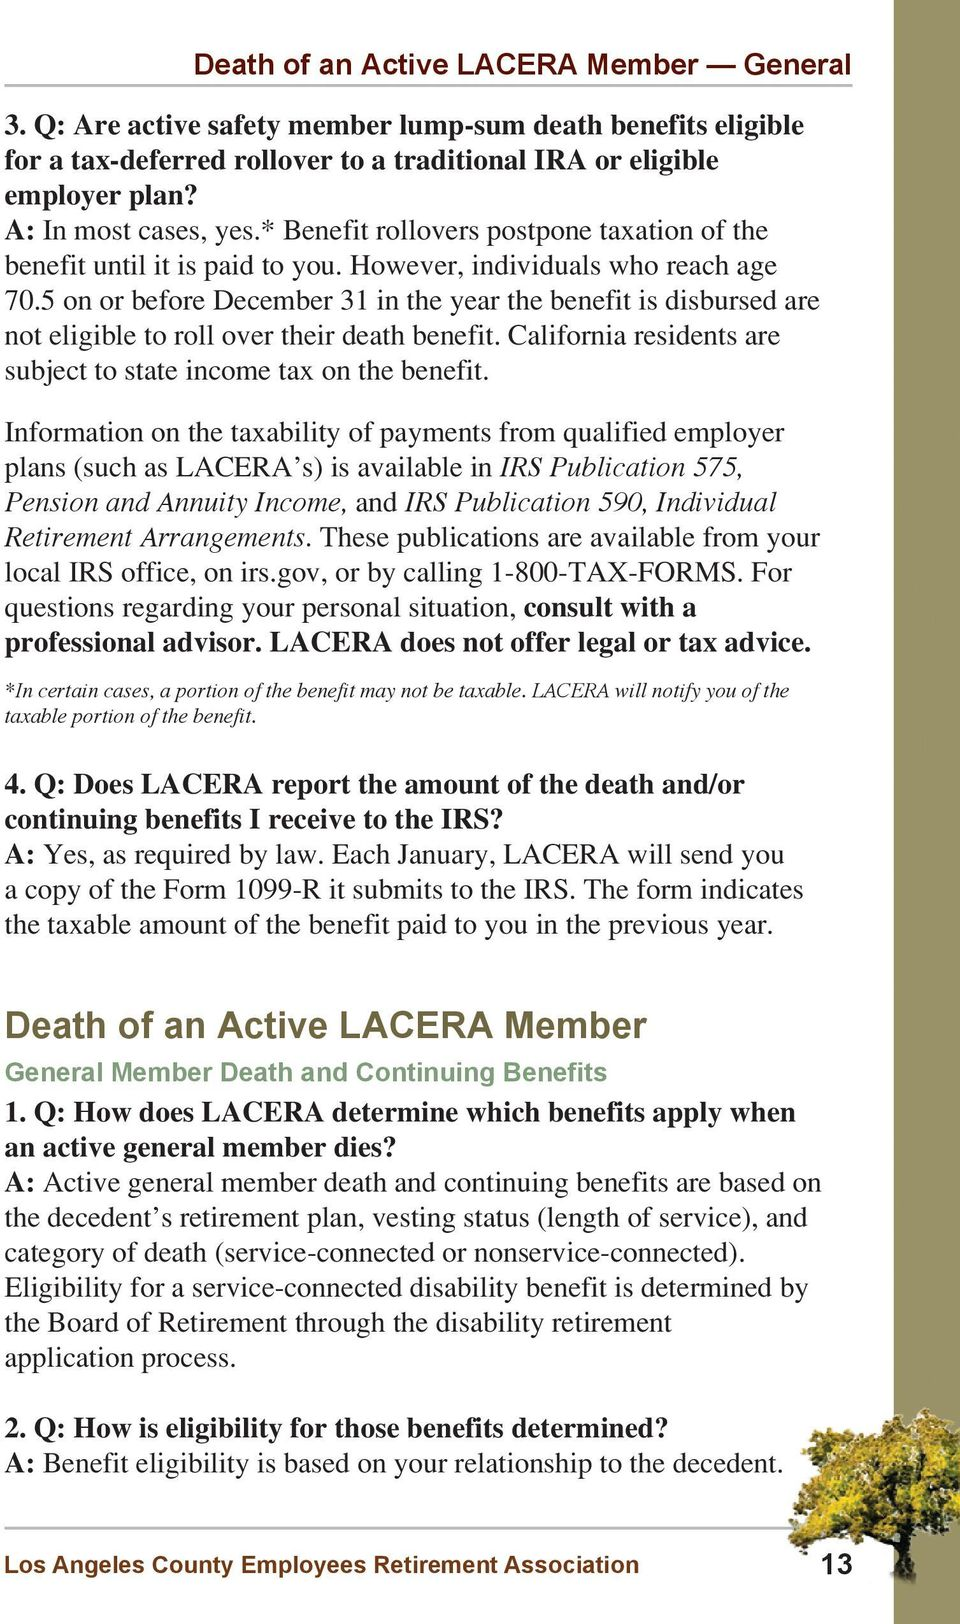 5 on or before December 31 in the year the benefit is disbursed are not eligible to roll over their death benefit. California residents are subject to state income tax on the benefit.